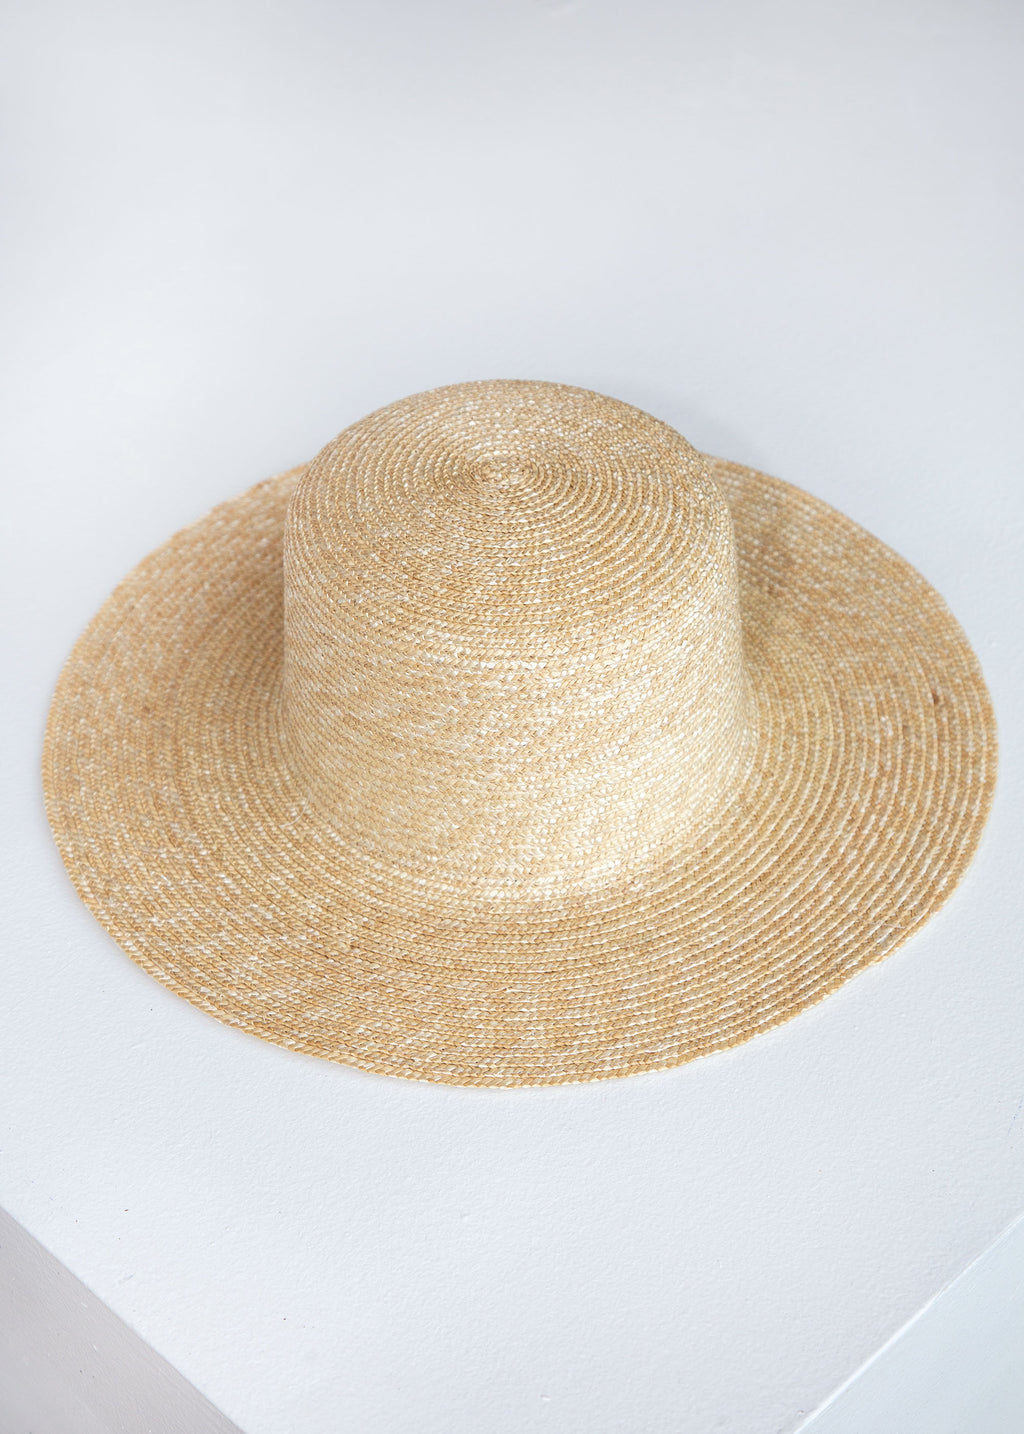 Medium Brim Flat Top Hat wShade in Natural - SOLD OUT